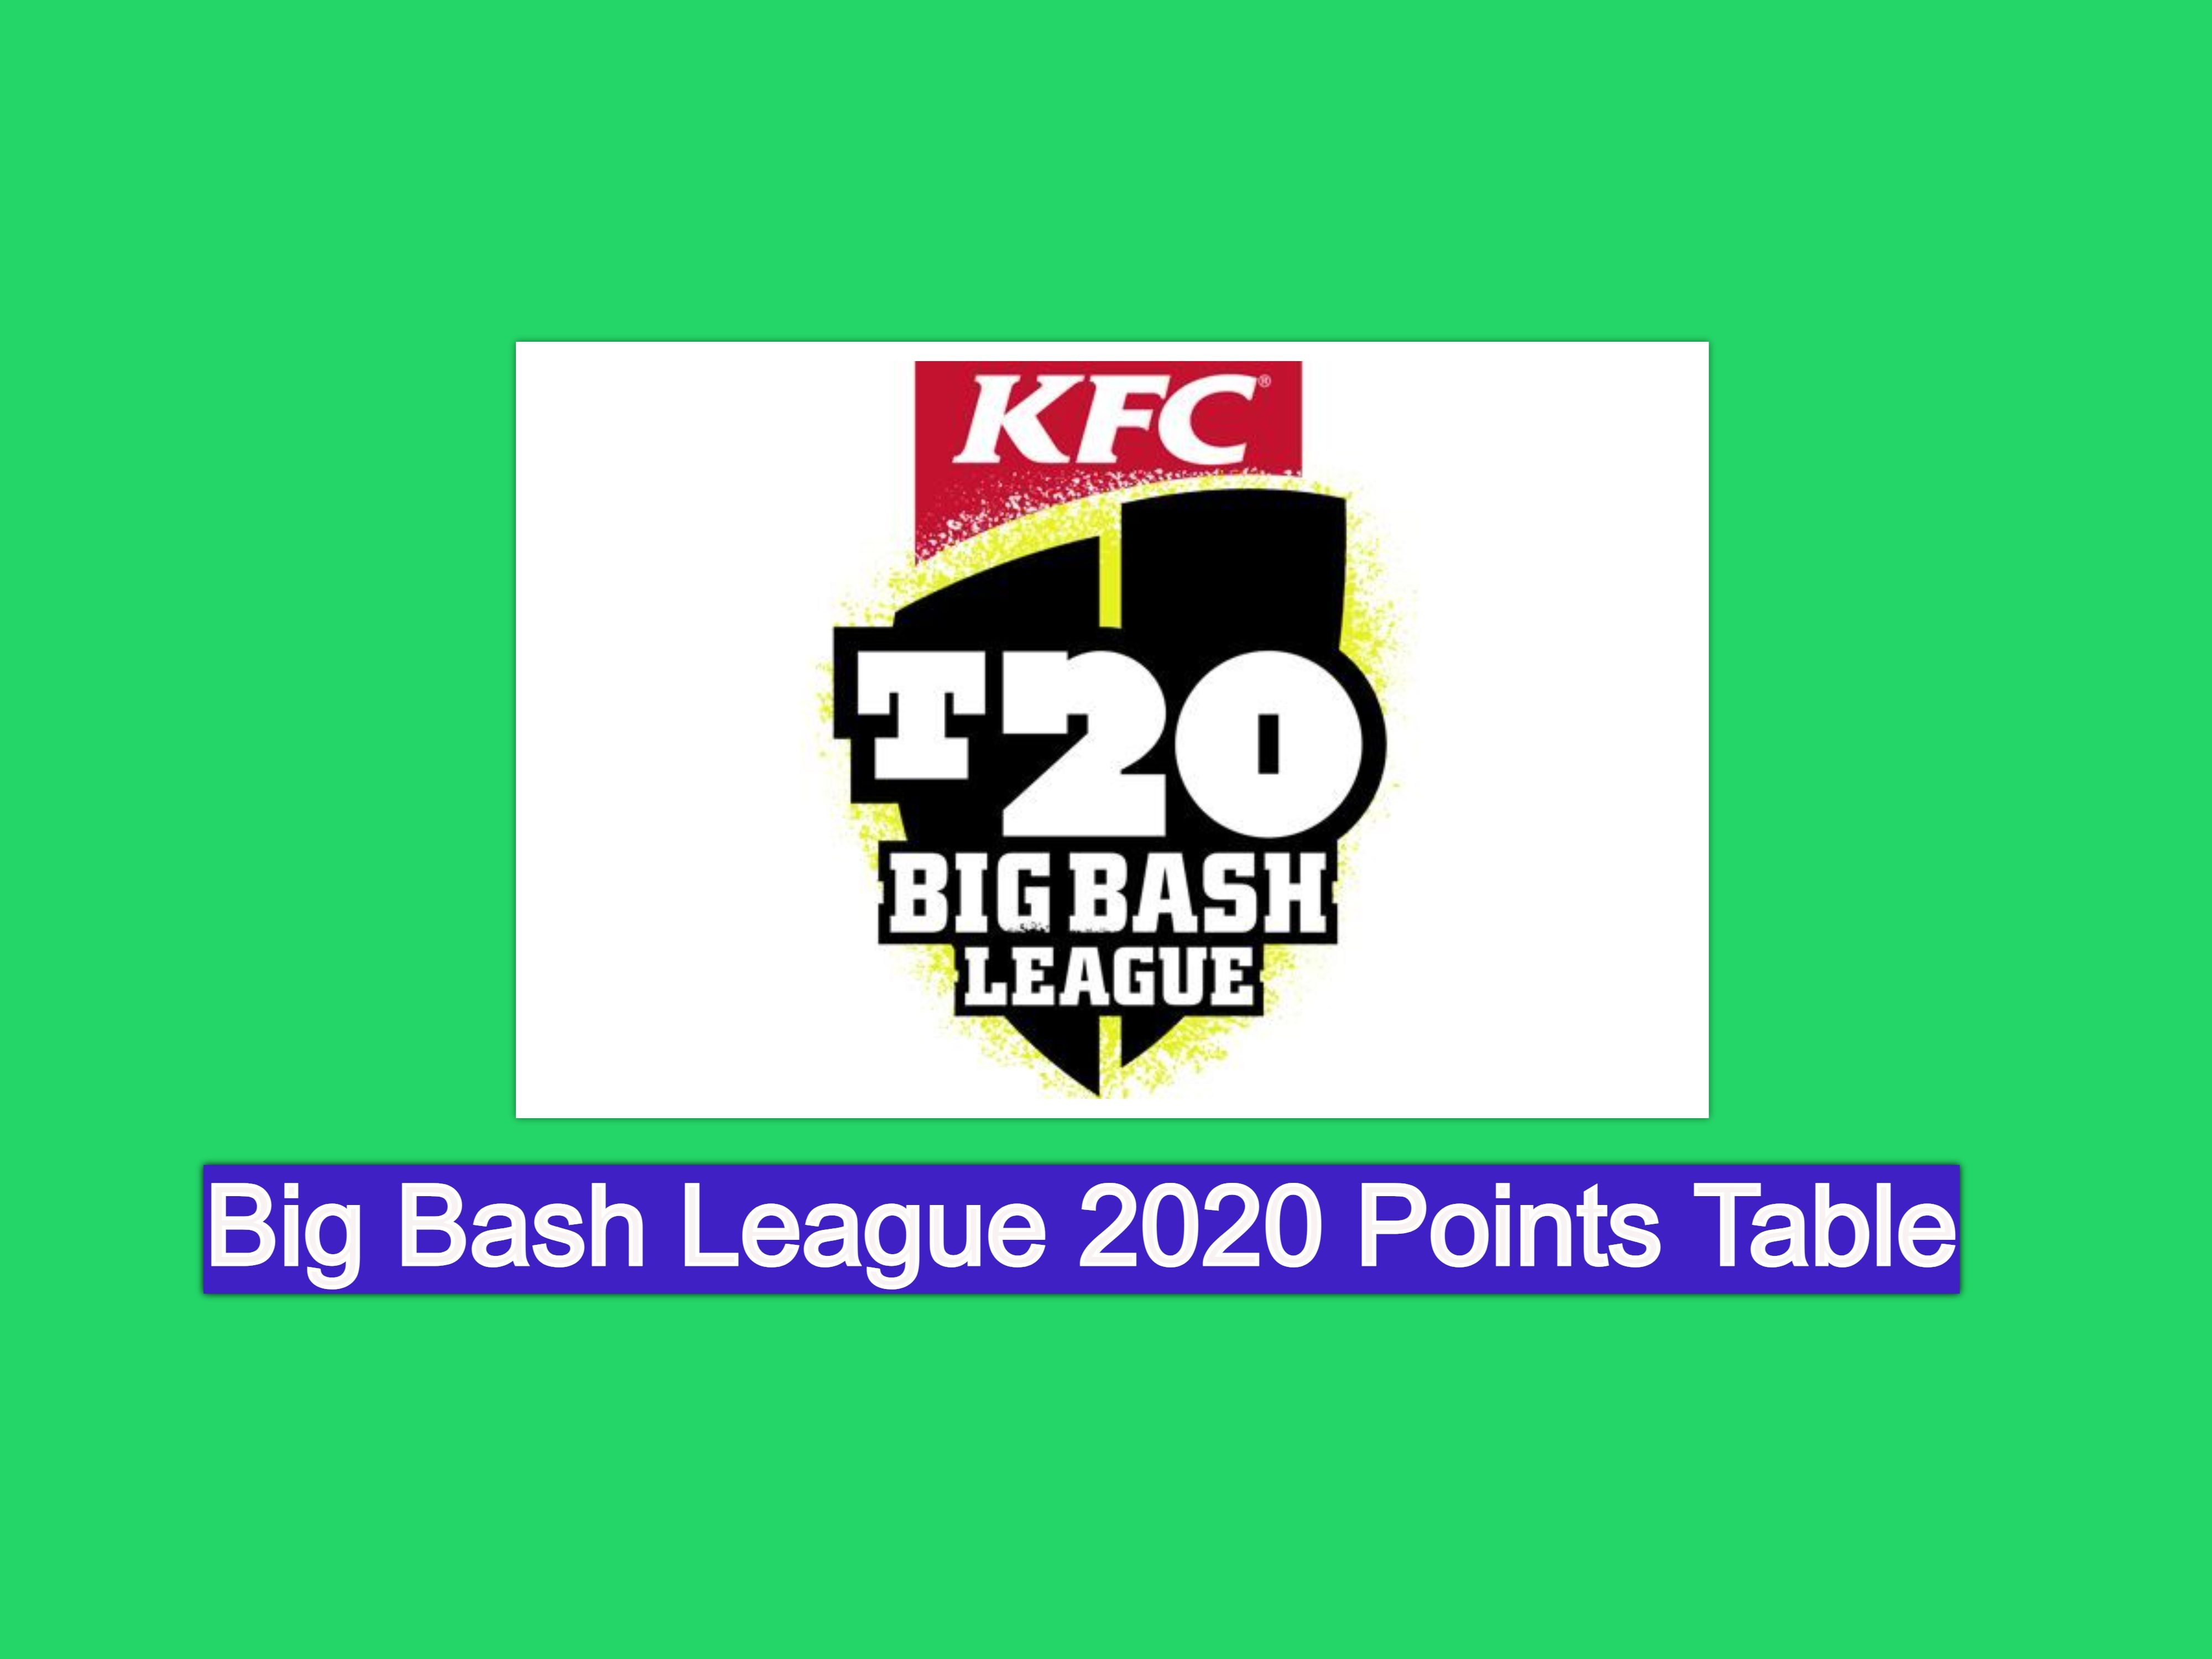 BBL 2020 Points Table